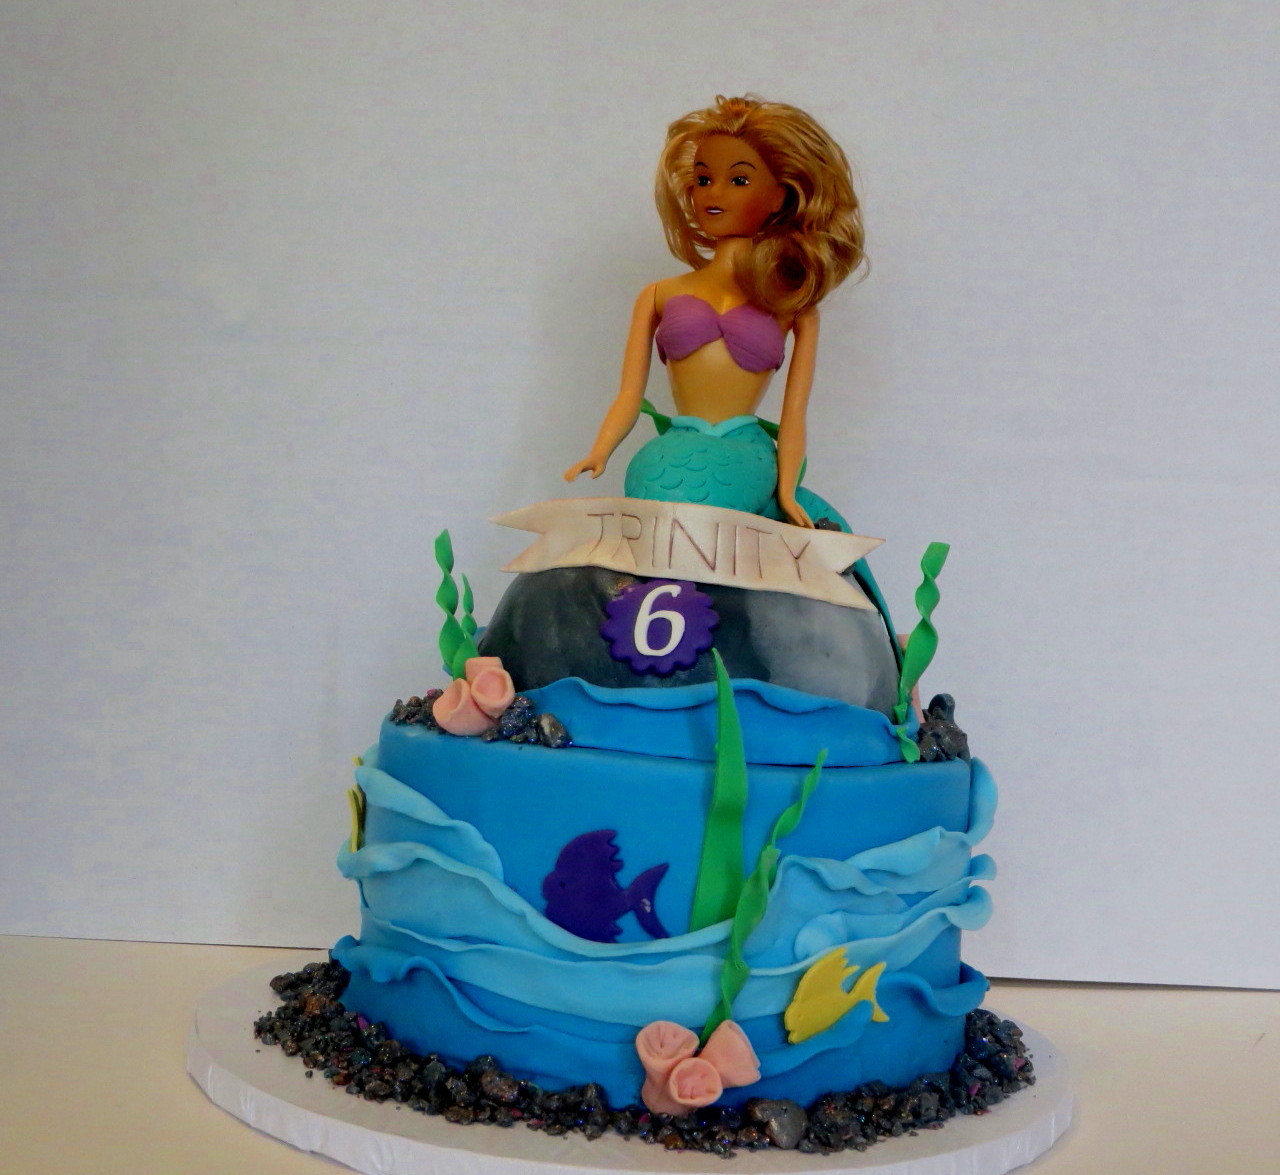 Peachy Trinitys Mermaid Birthday Cake Blue Ivy Cakery Personalised Birthday Cards Veneteletsinfo